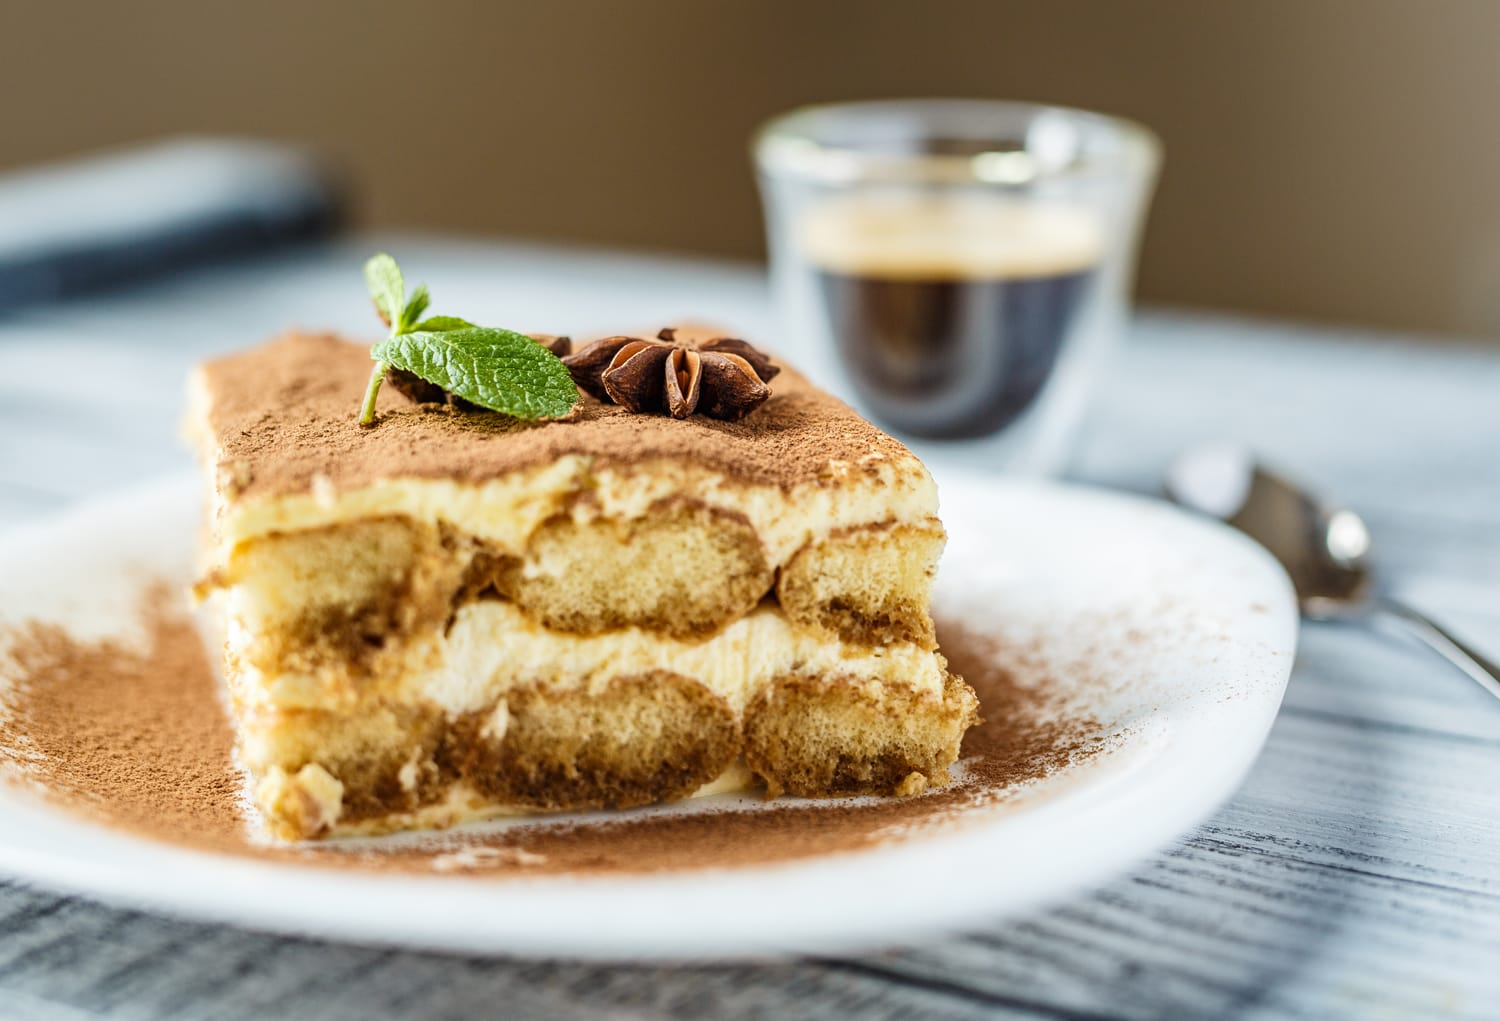 Gluten free rome a travel guide for celiacs road affair delicious tiramisu on a wooden background fandeluxe Gallery